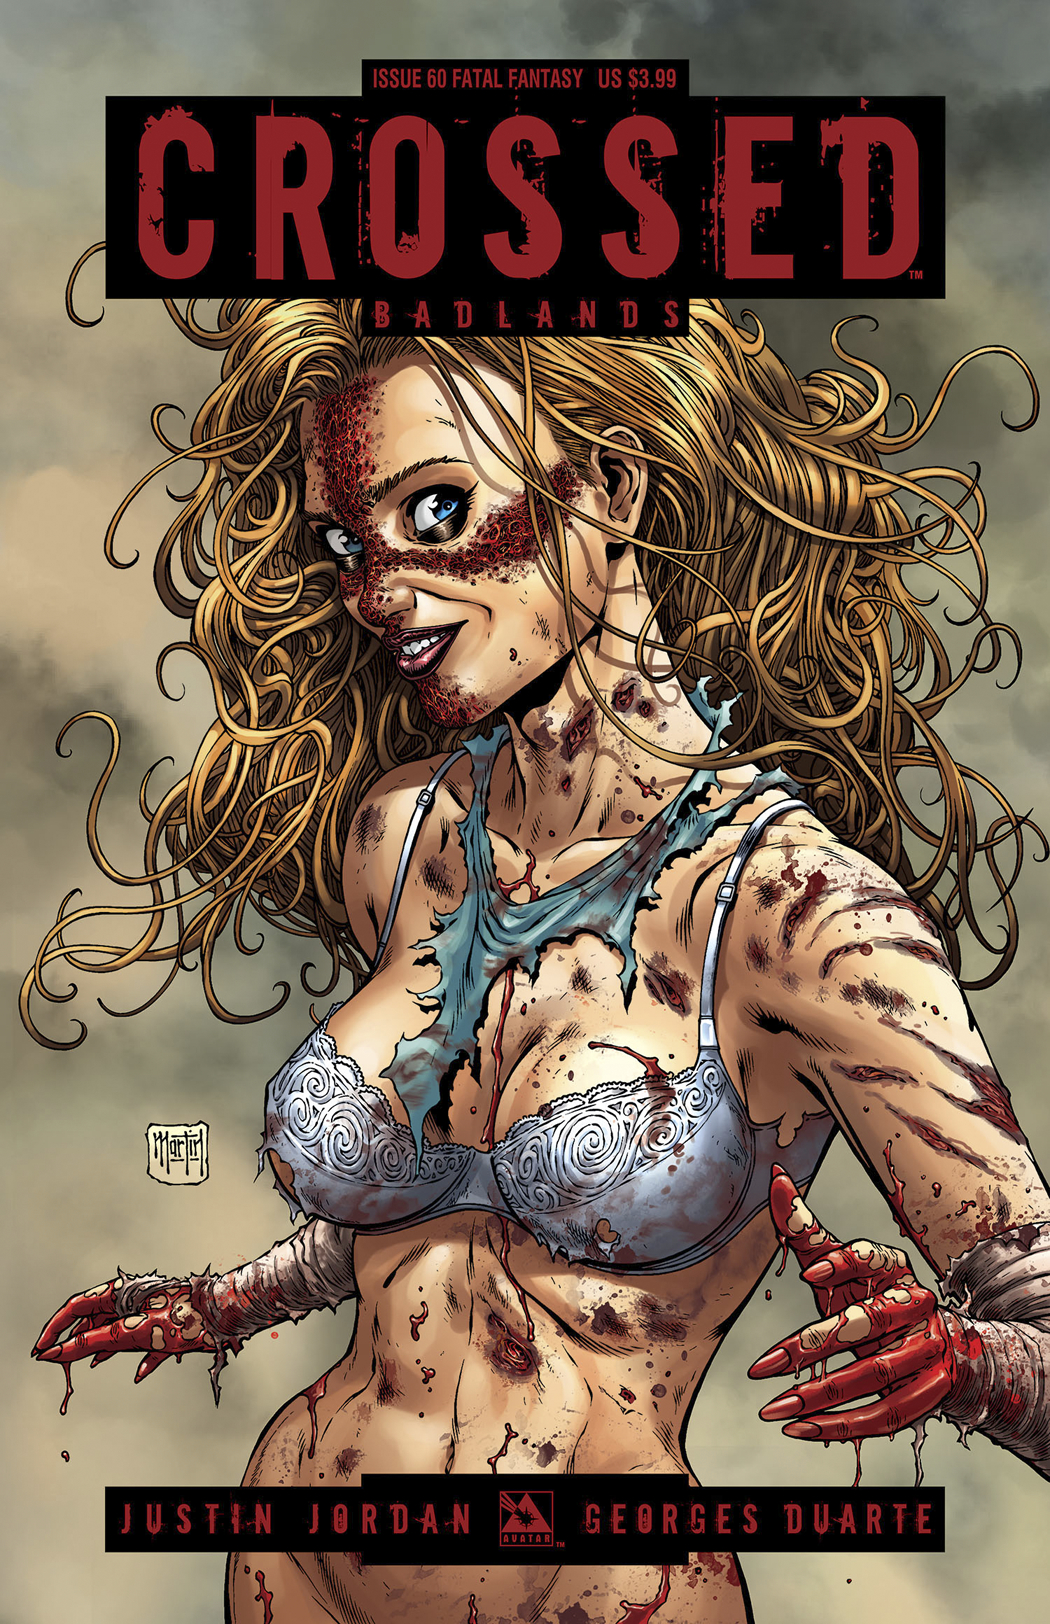 CROSSED BADLANDS #60 FATAL FANTASY CVR